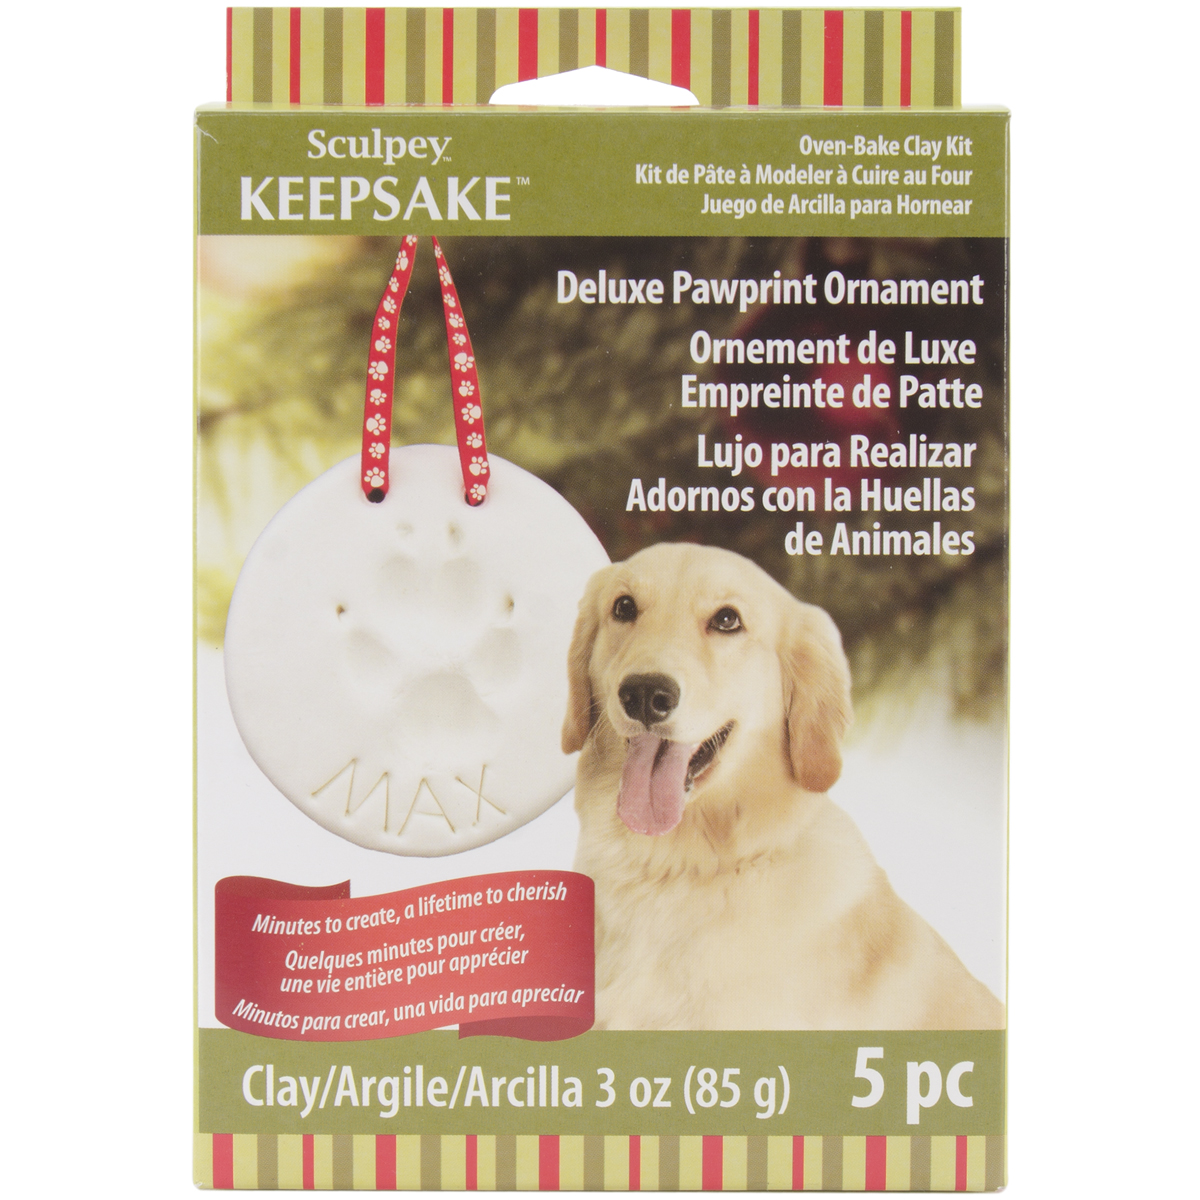 Sculpey Keepsake Kit-Pawprint Ornament